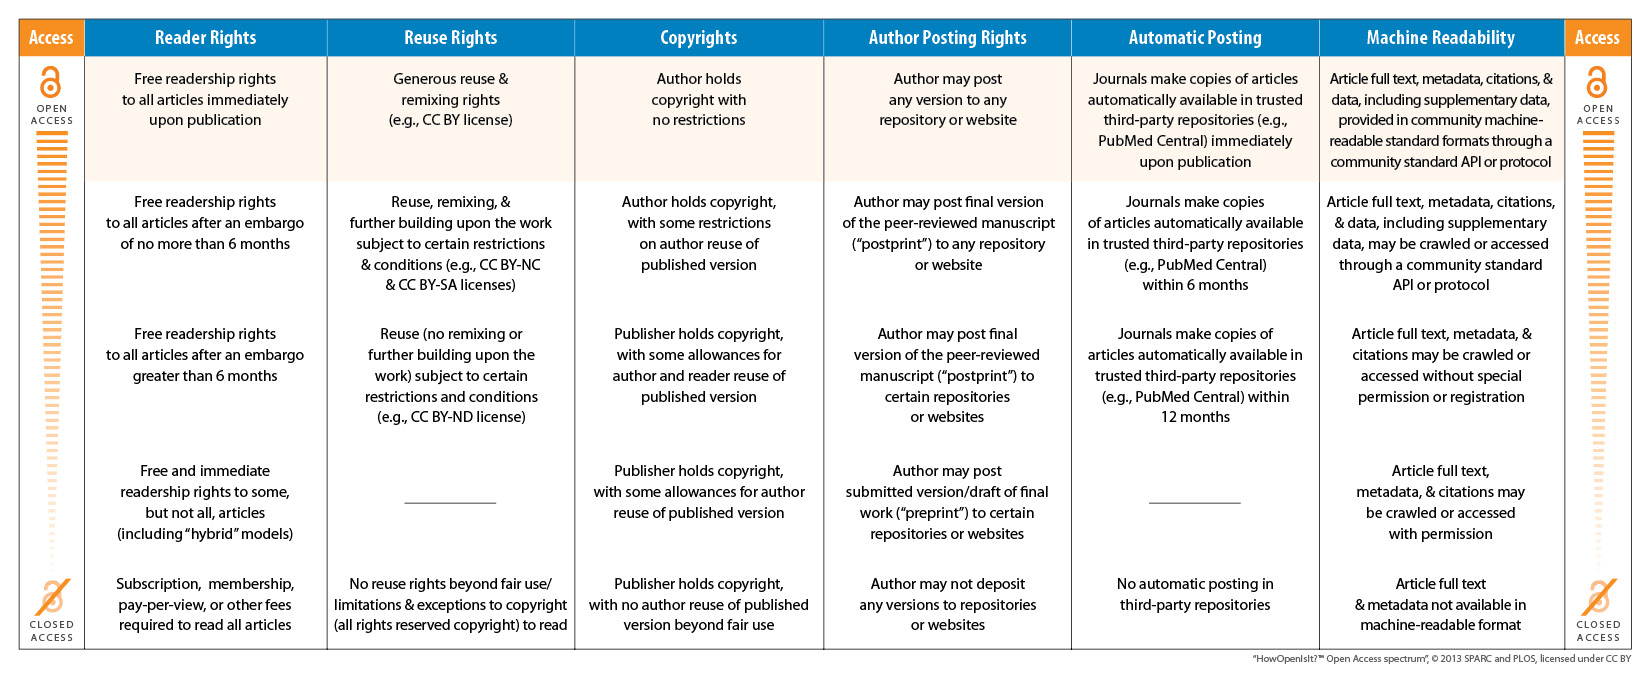 A table describing levels of open access in terms of reader and reuse rights, copyrights, author posting rights, automatic posting, and machine readability. Click this image for a screen-readable version